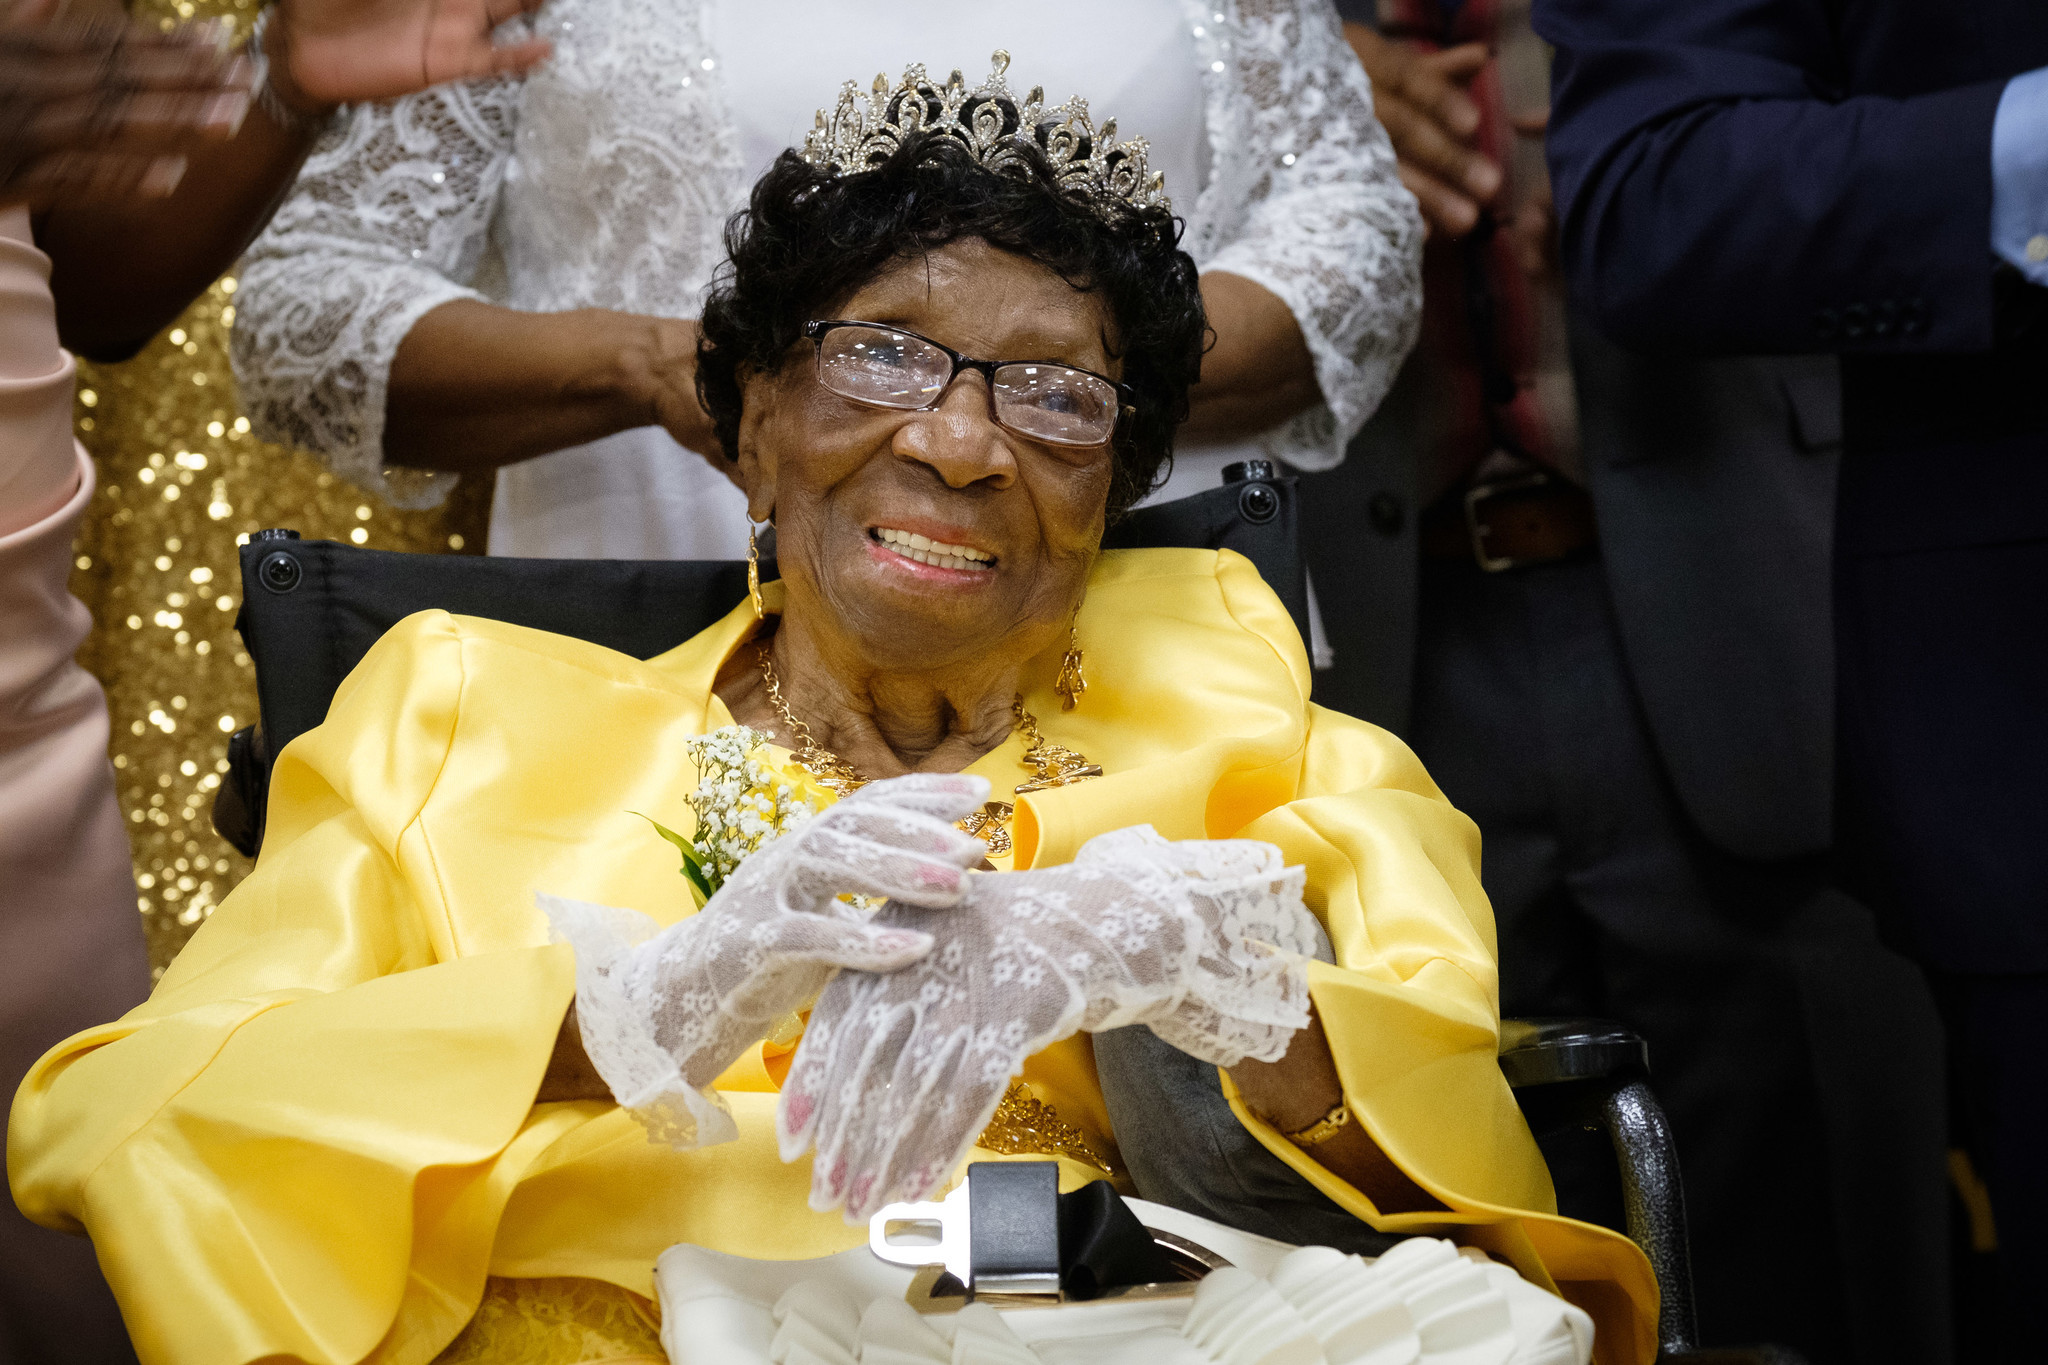 NYC woman believed to be the oldest person in U.S. dead at age 114